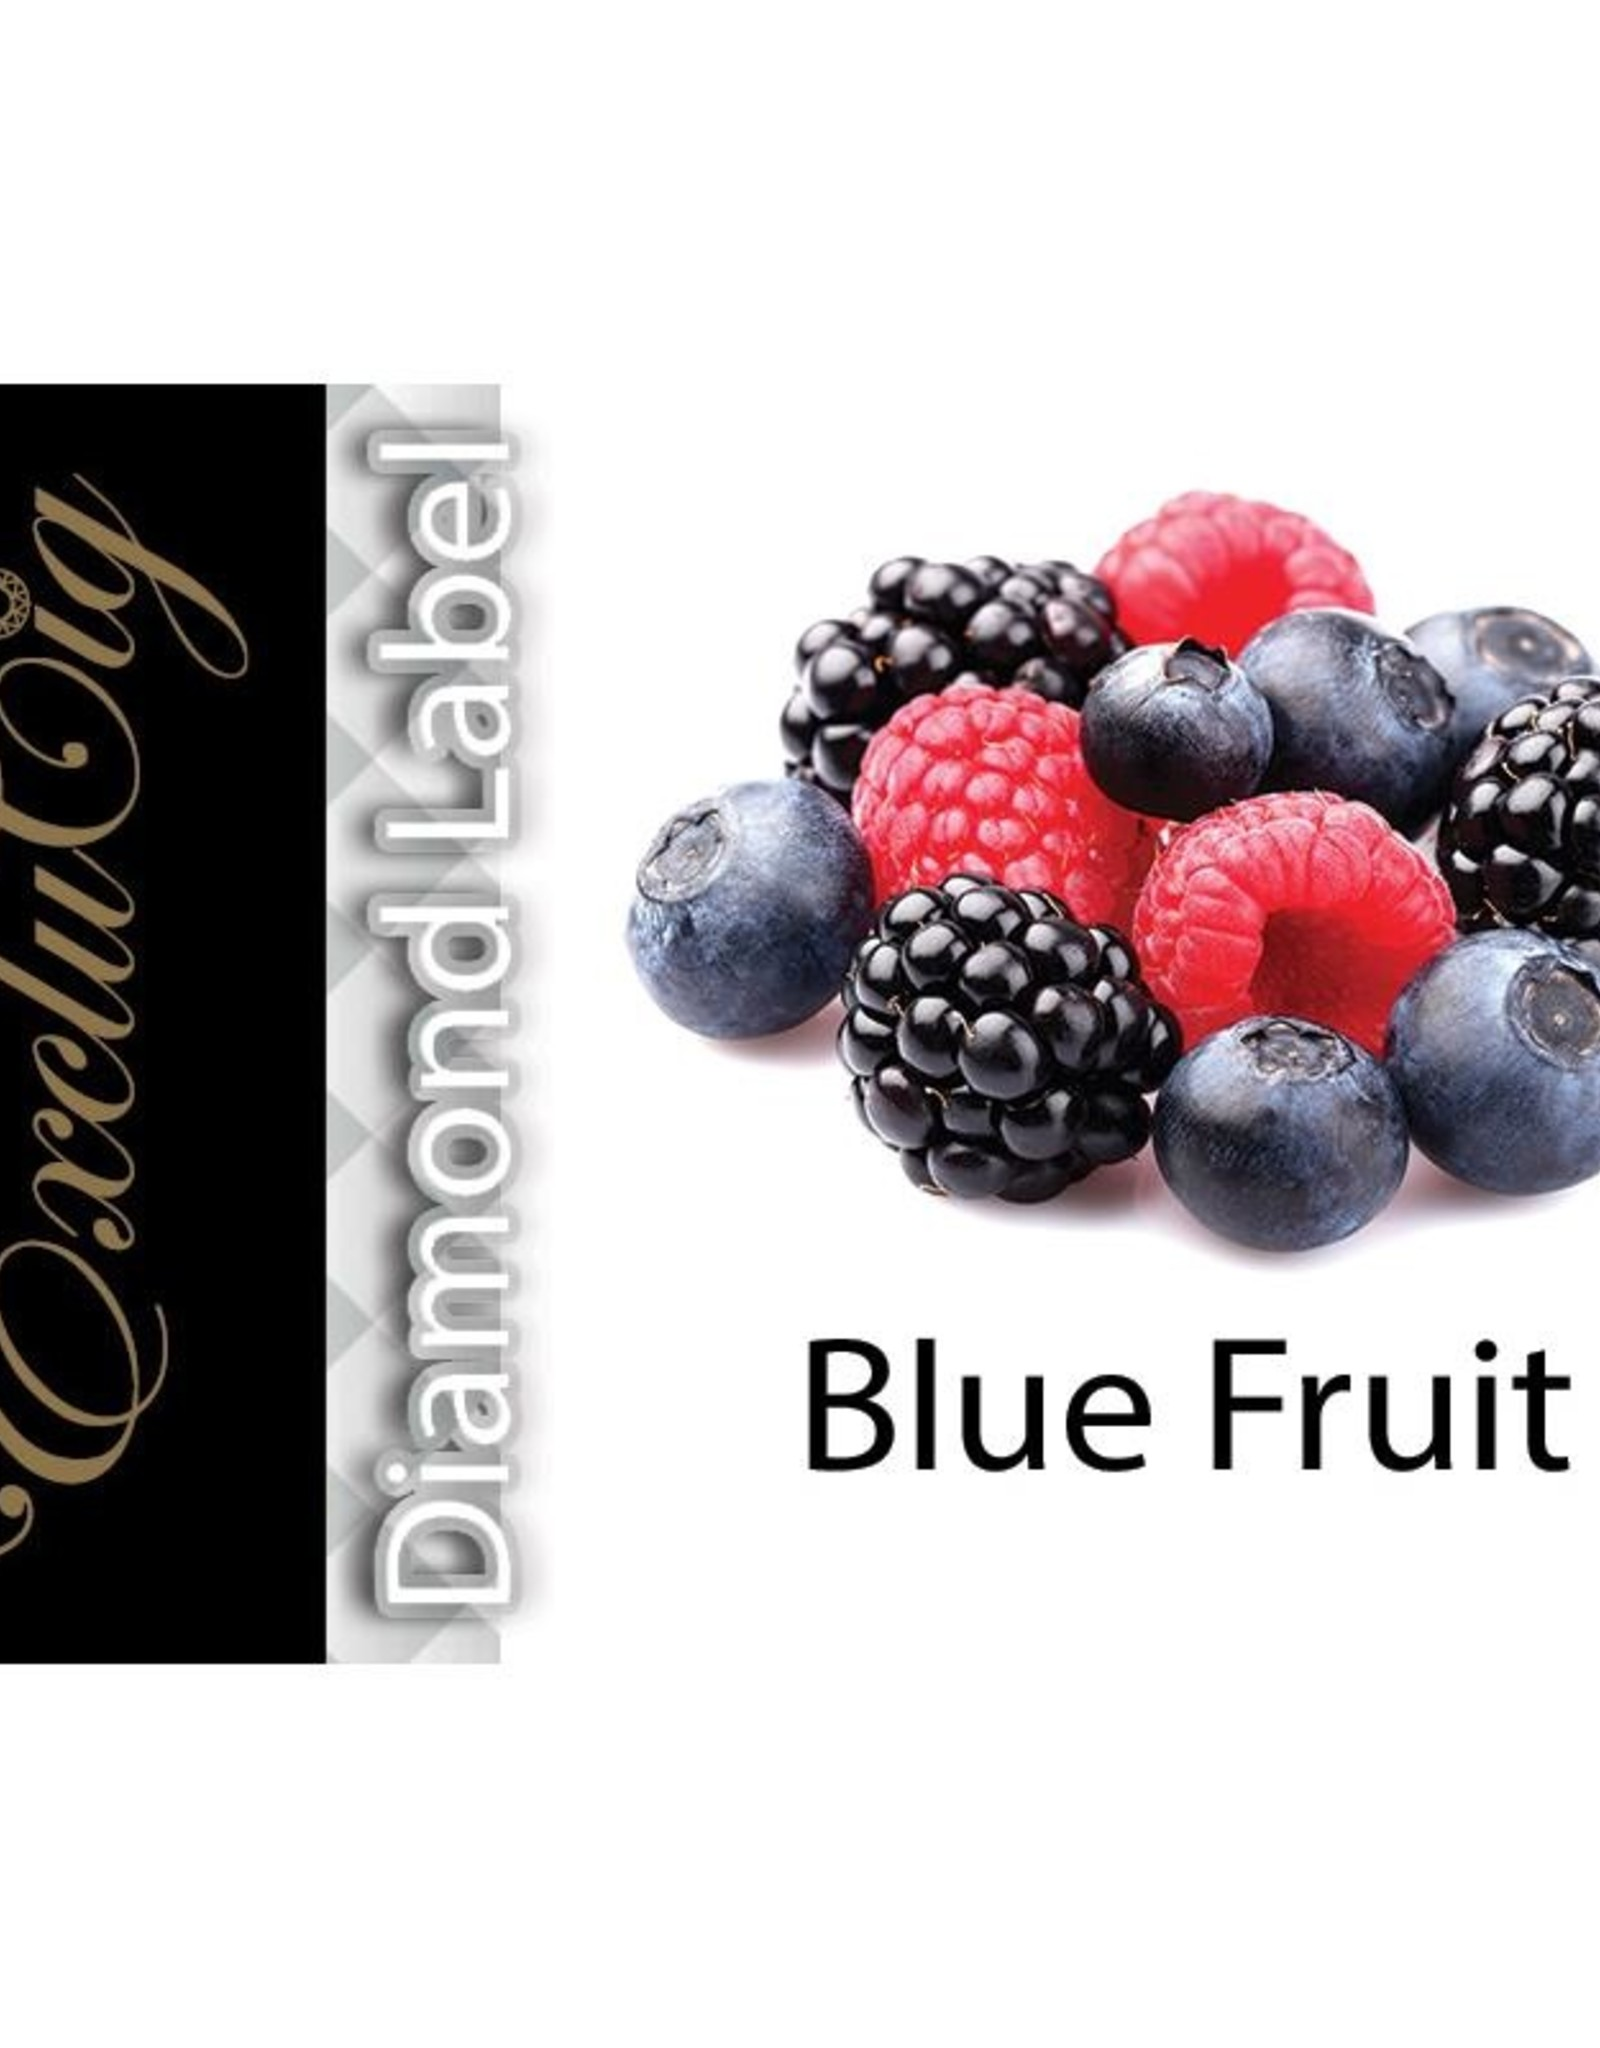 Exclucig Exclucig Diamond Label E-liquid Blue Fruit 0 mg Nicotine